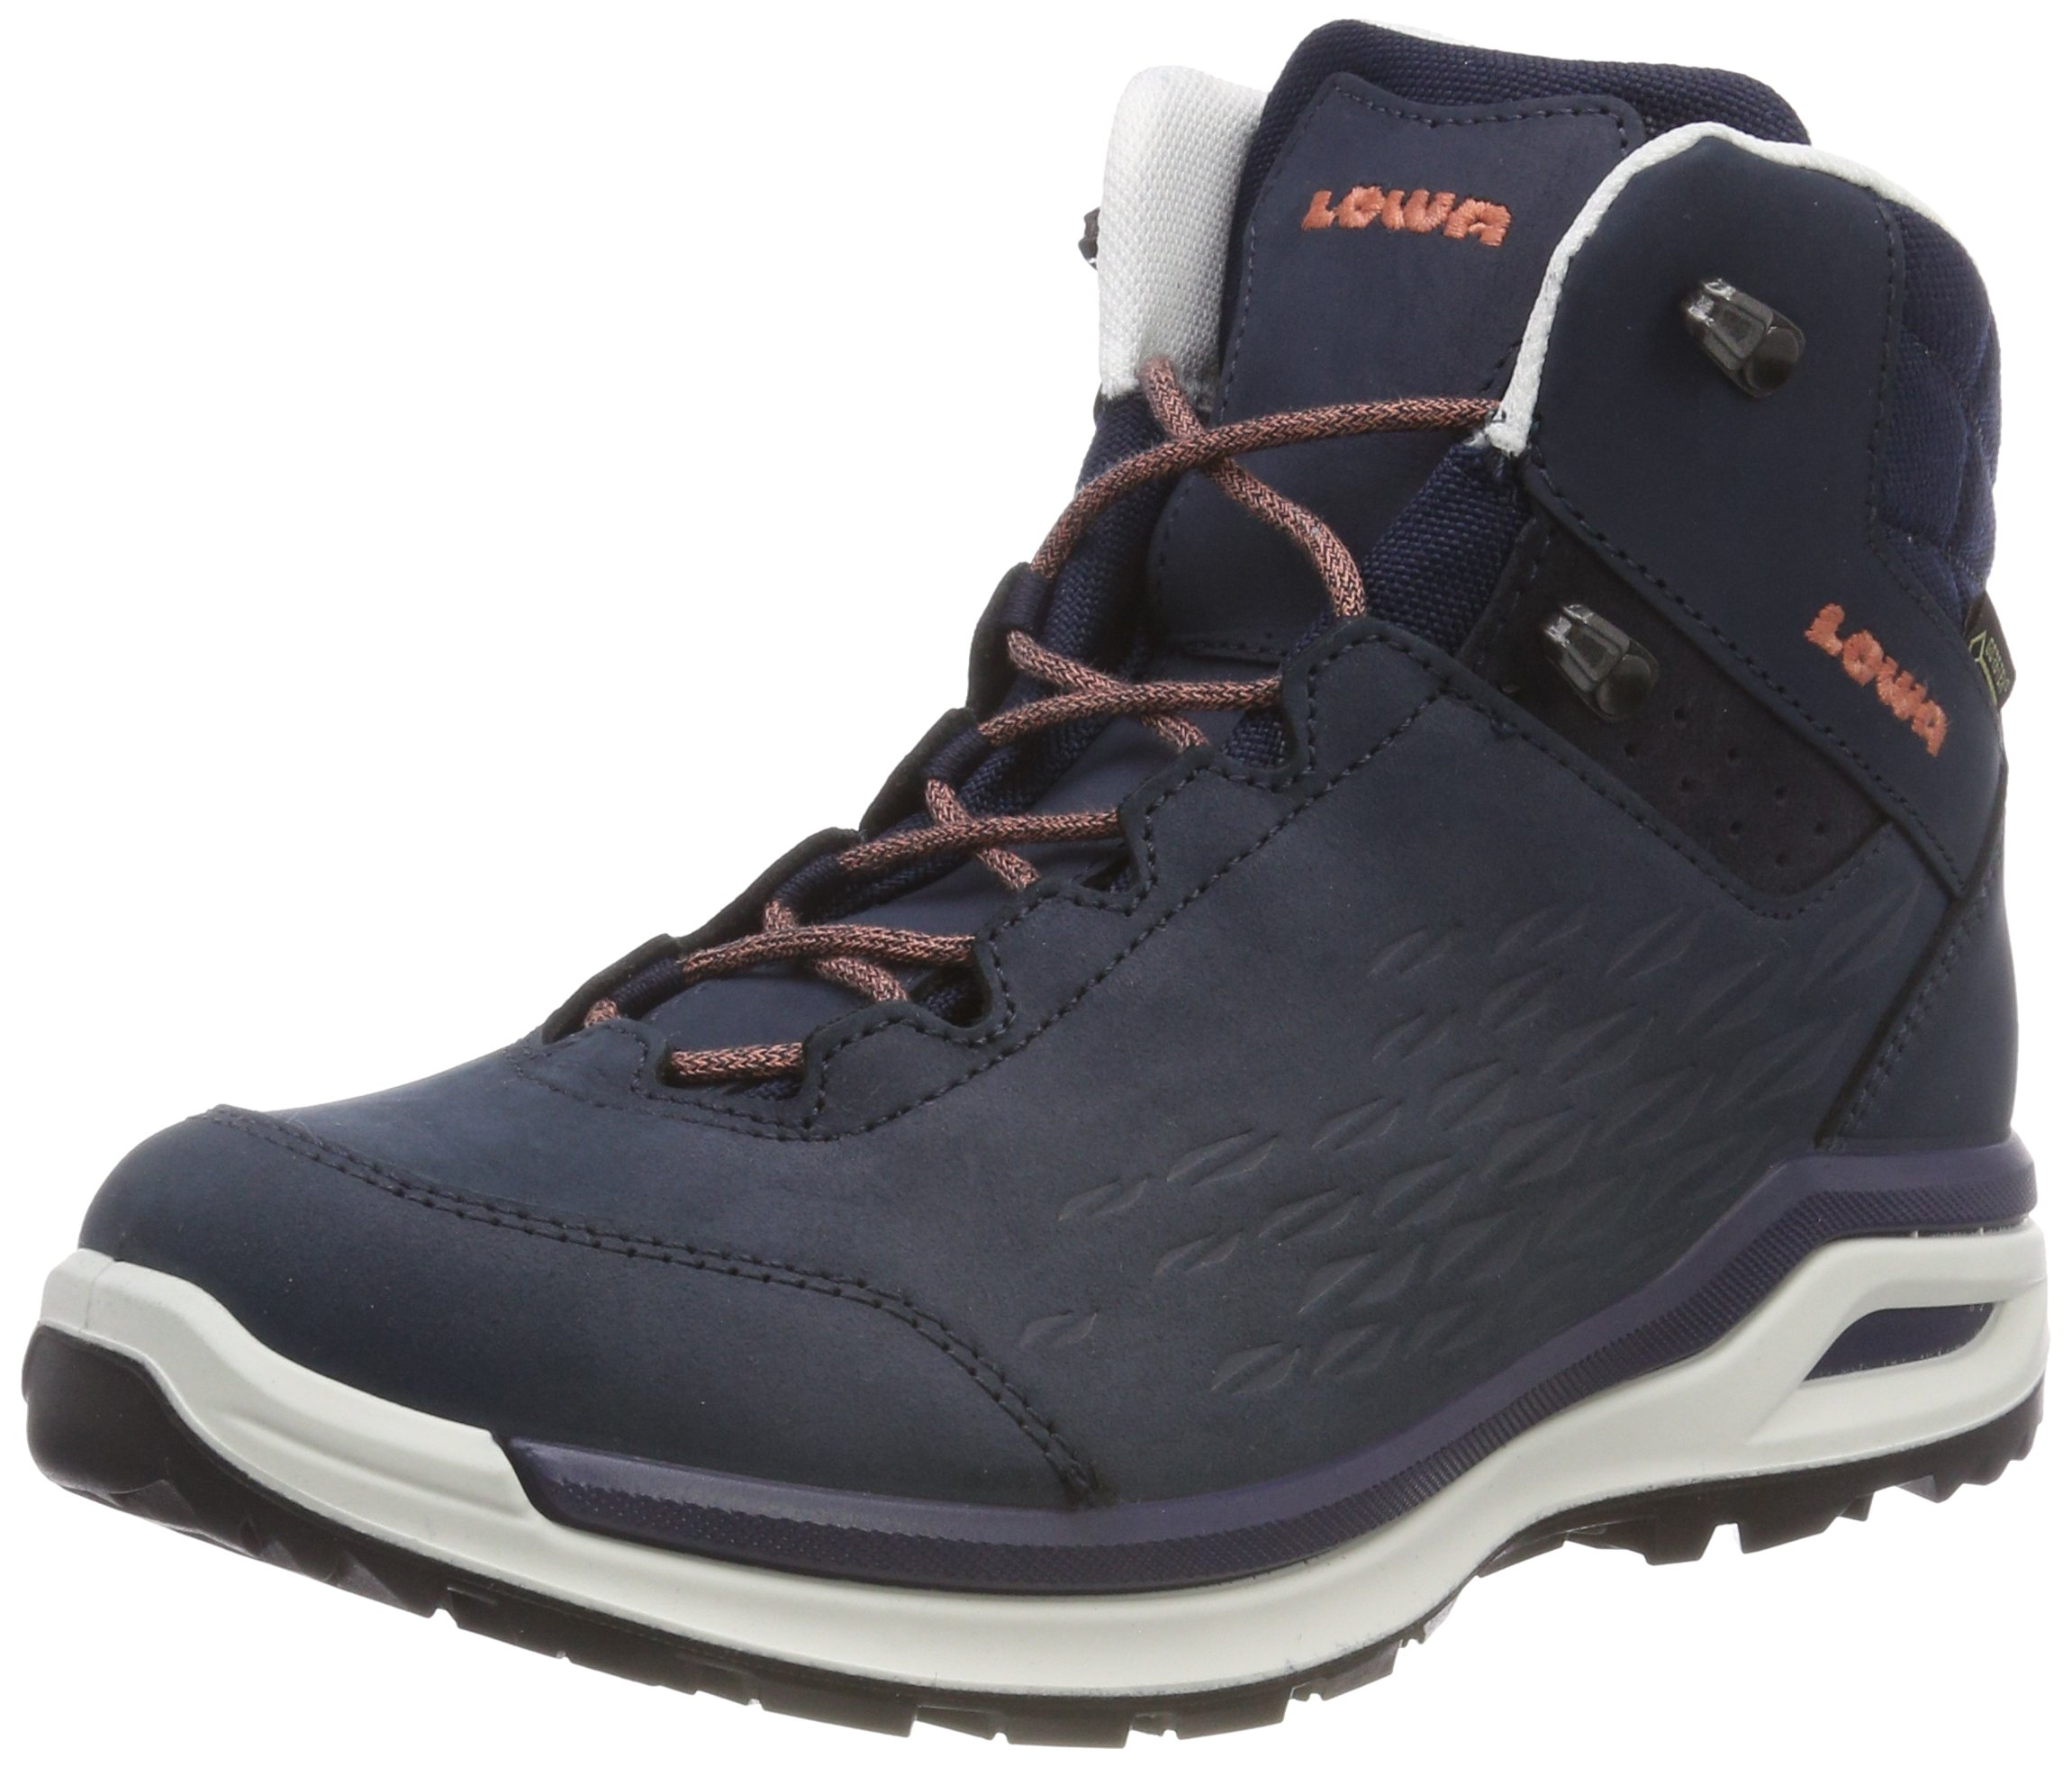 Qc Hiking Boots Rise Gtx Lowa Women's Locarno High Rj35LAq4